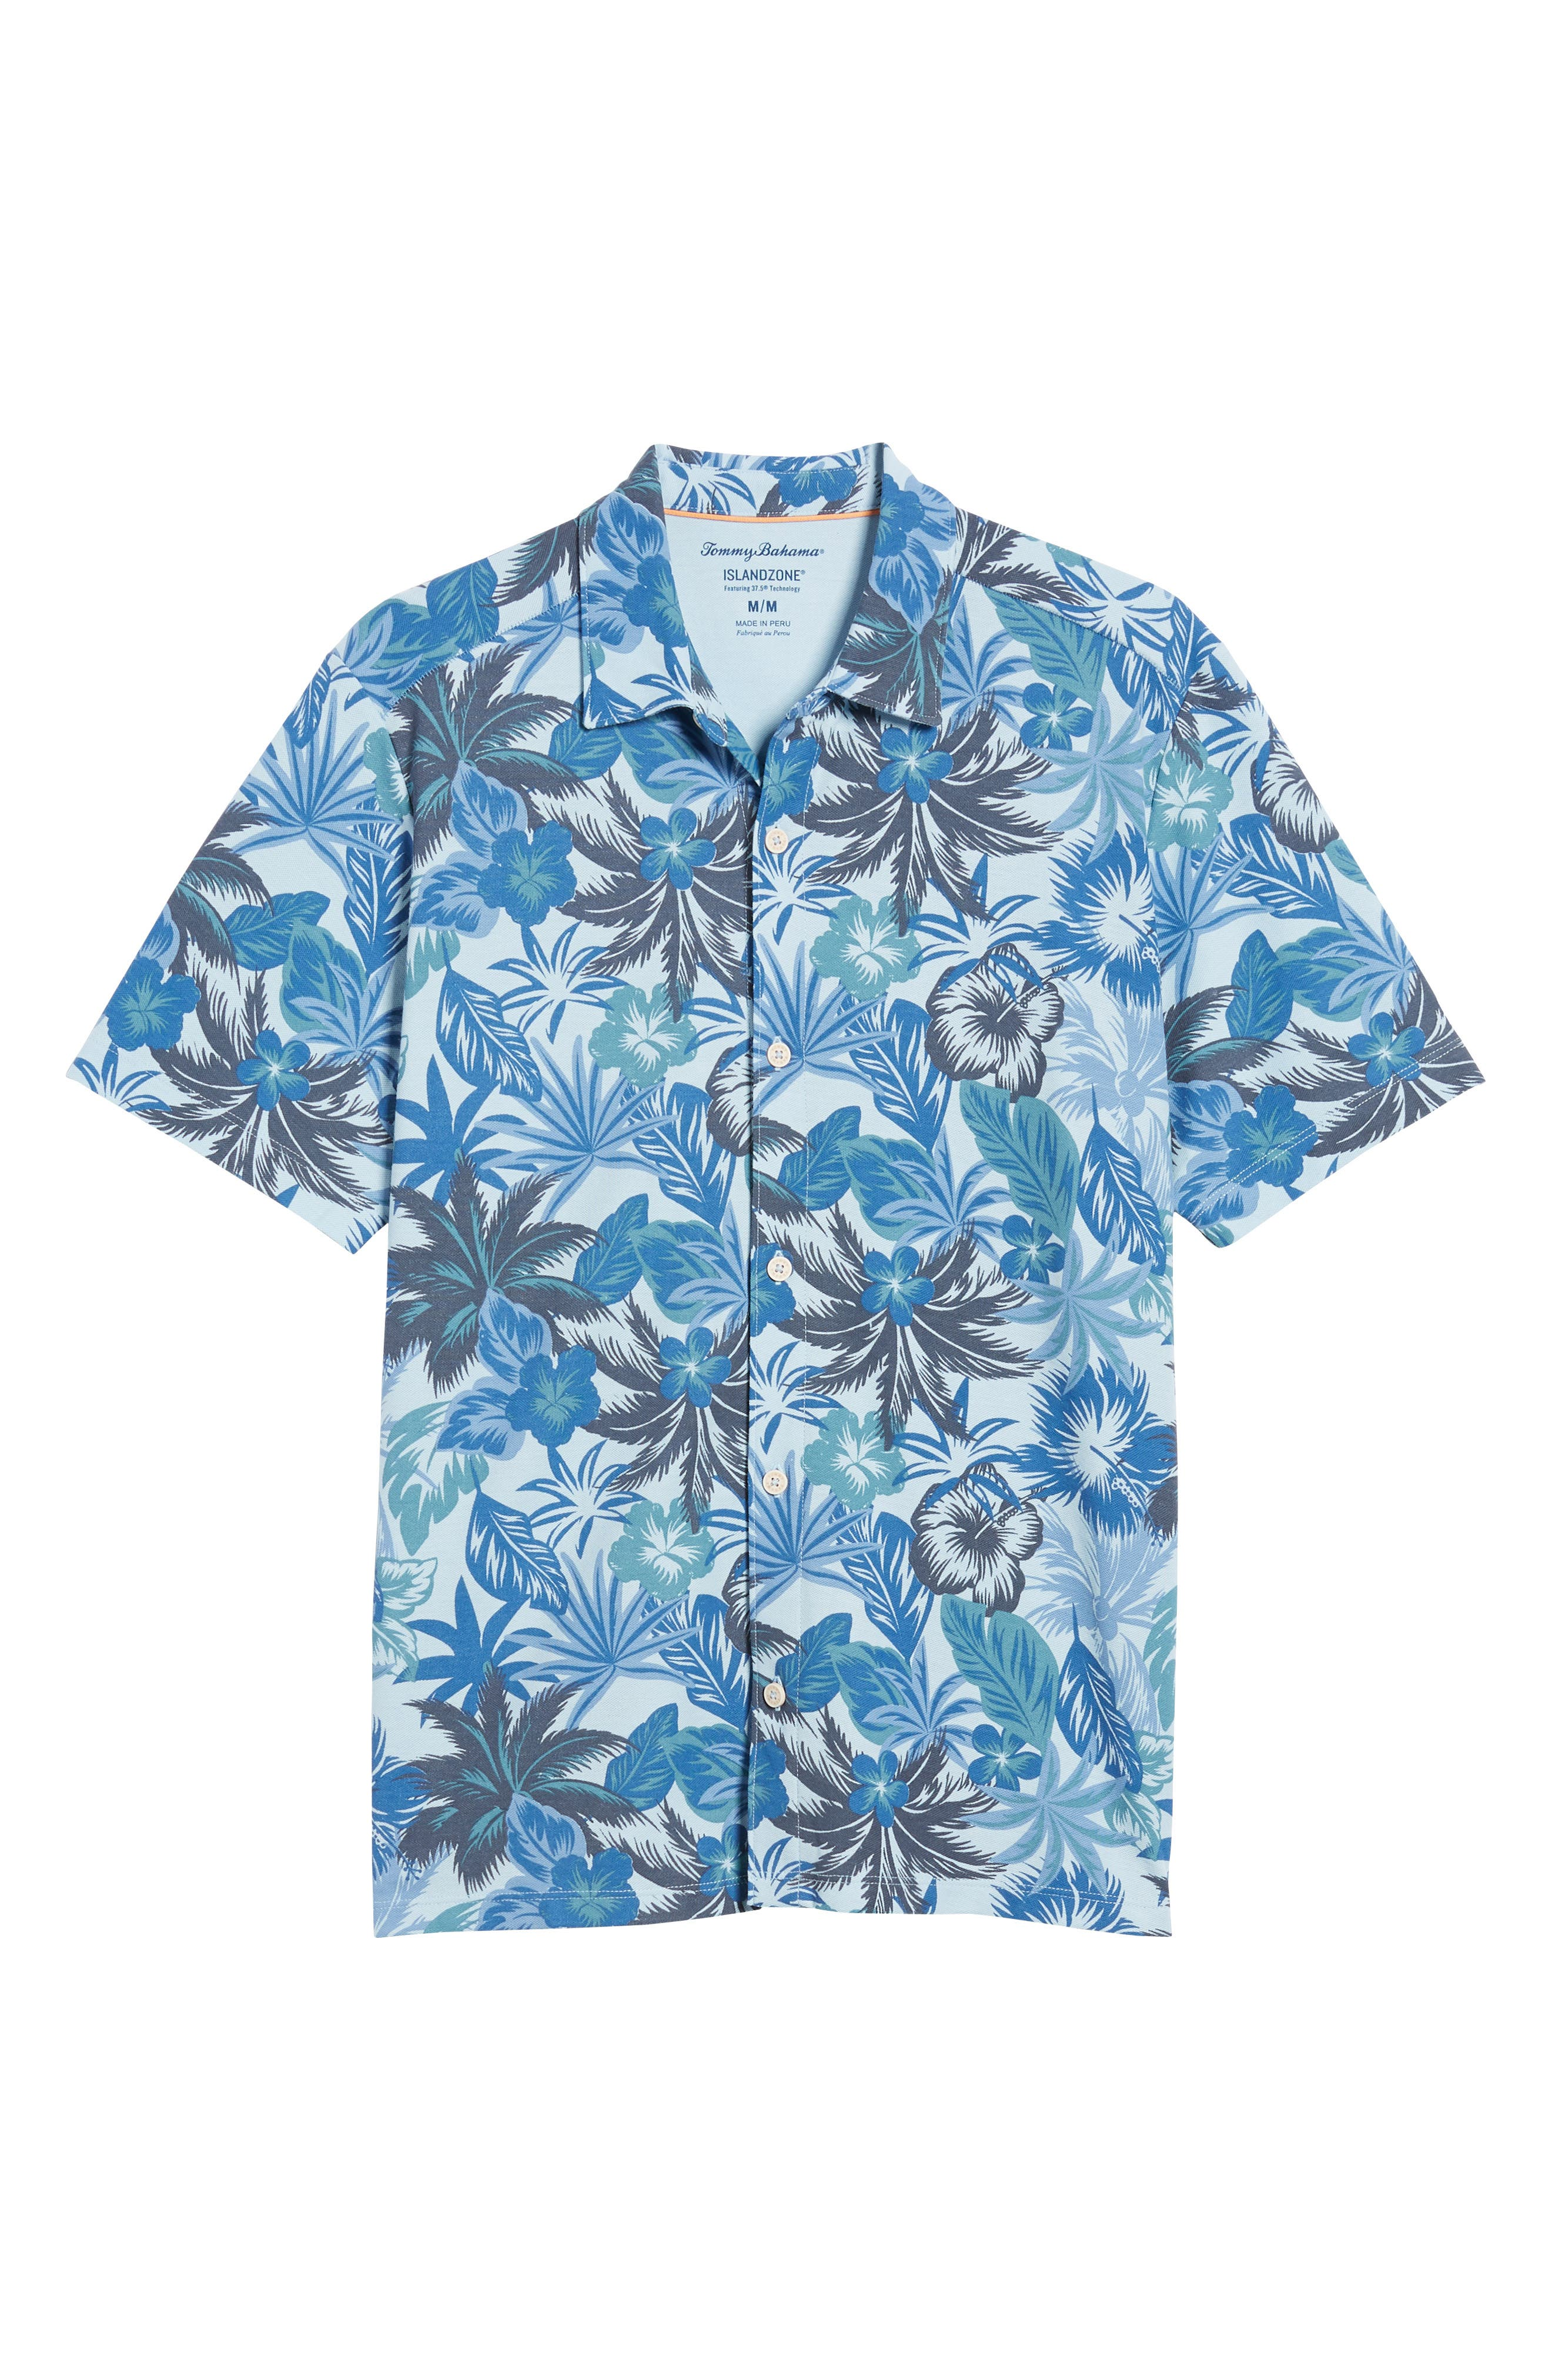 Fuego Floral Camp Shirt,                             Alternate thumbnail 6, color,                             Light Sky